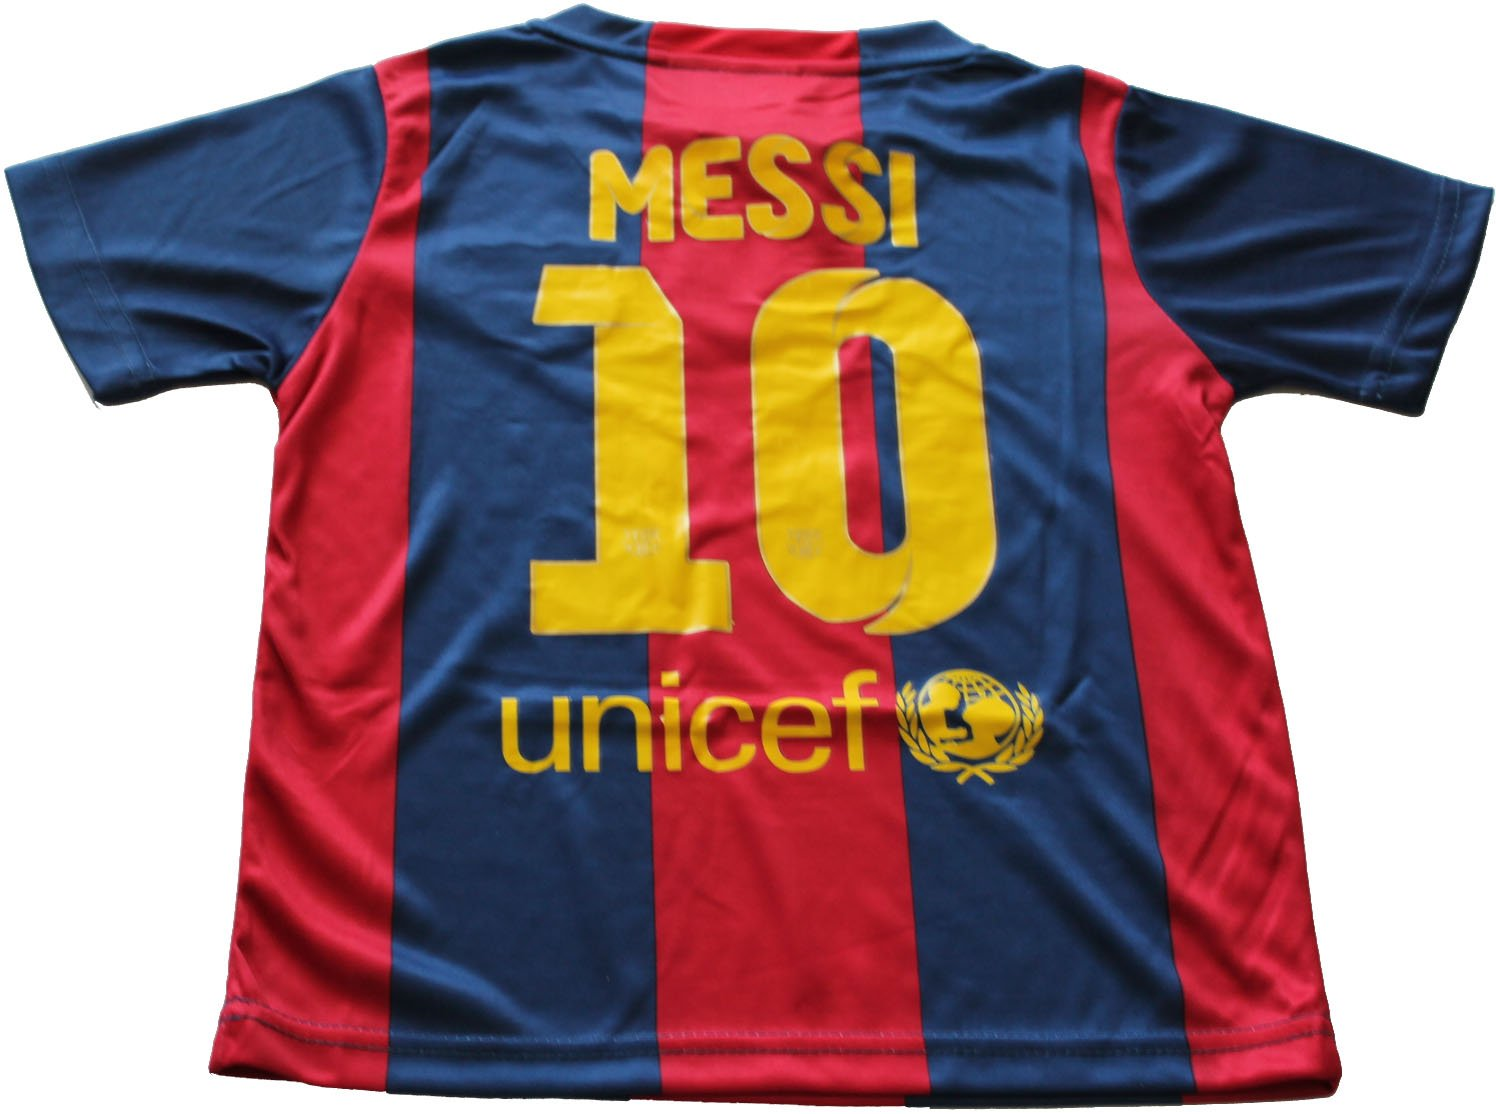 36d2e62e2 lionel messi football jersey on sale   OFF77% Discounts